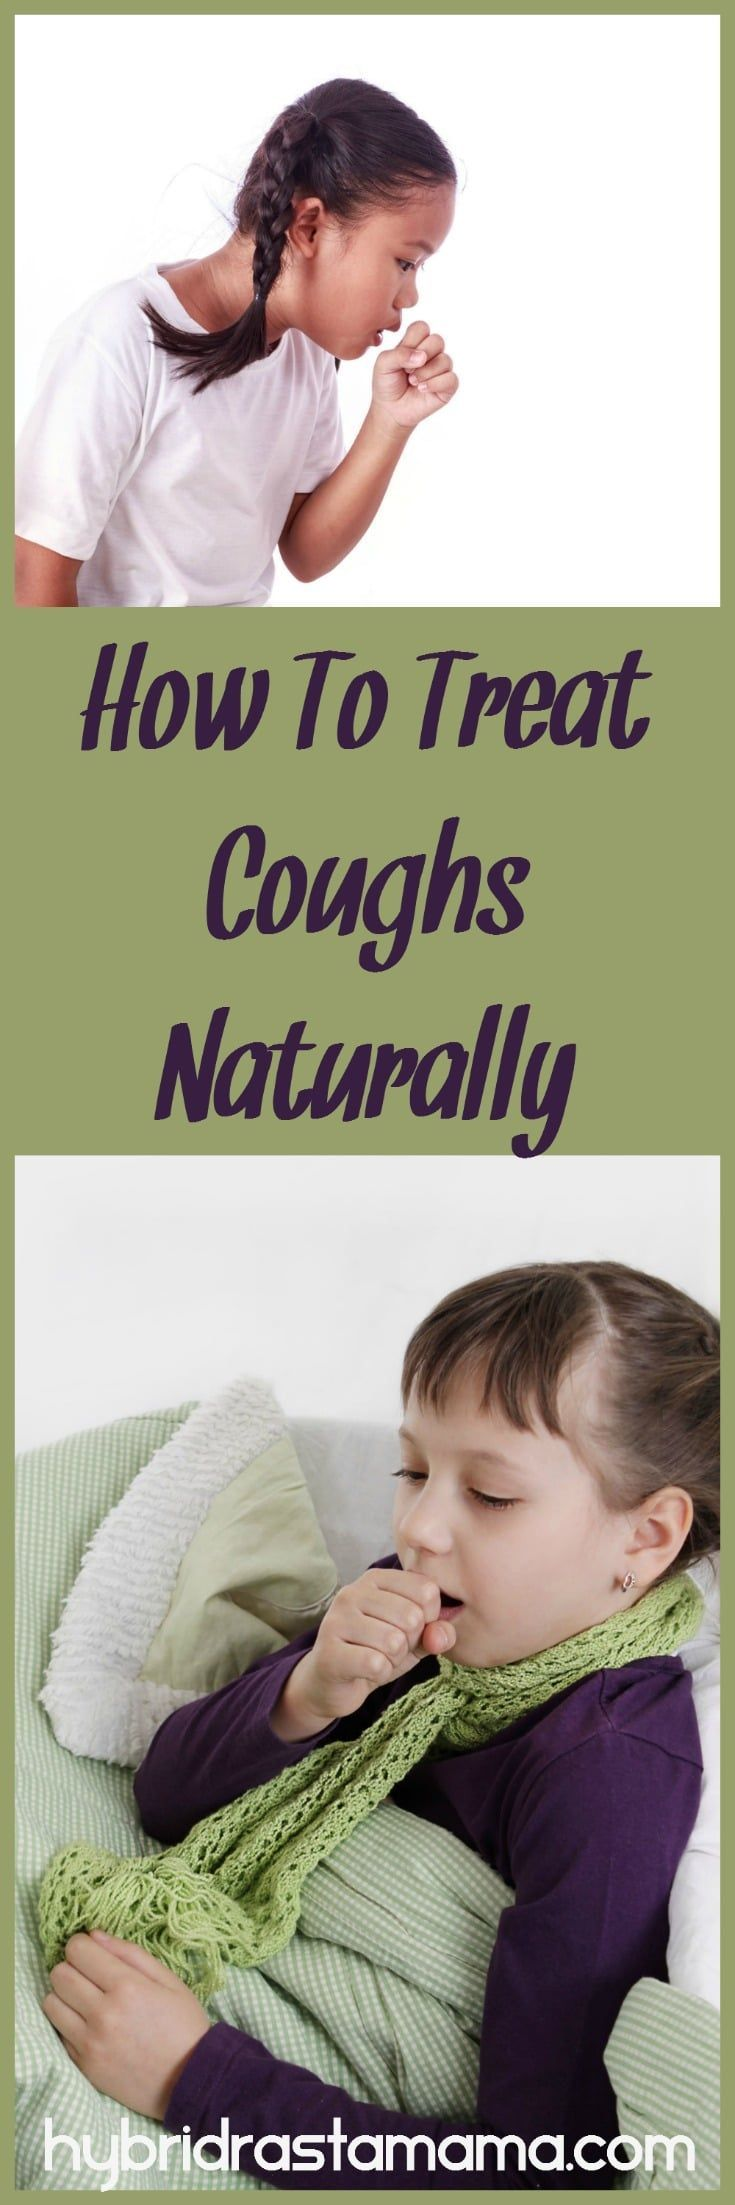 Coughing is rough on the body but it means that your body is doing its job. Learn how to treat coughs naturally and gently using herbs from HybridRastaMama.com.